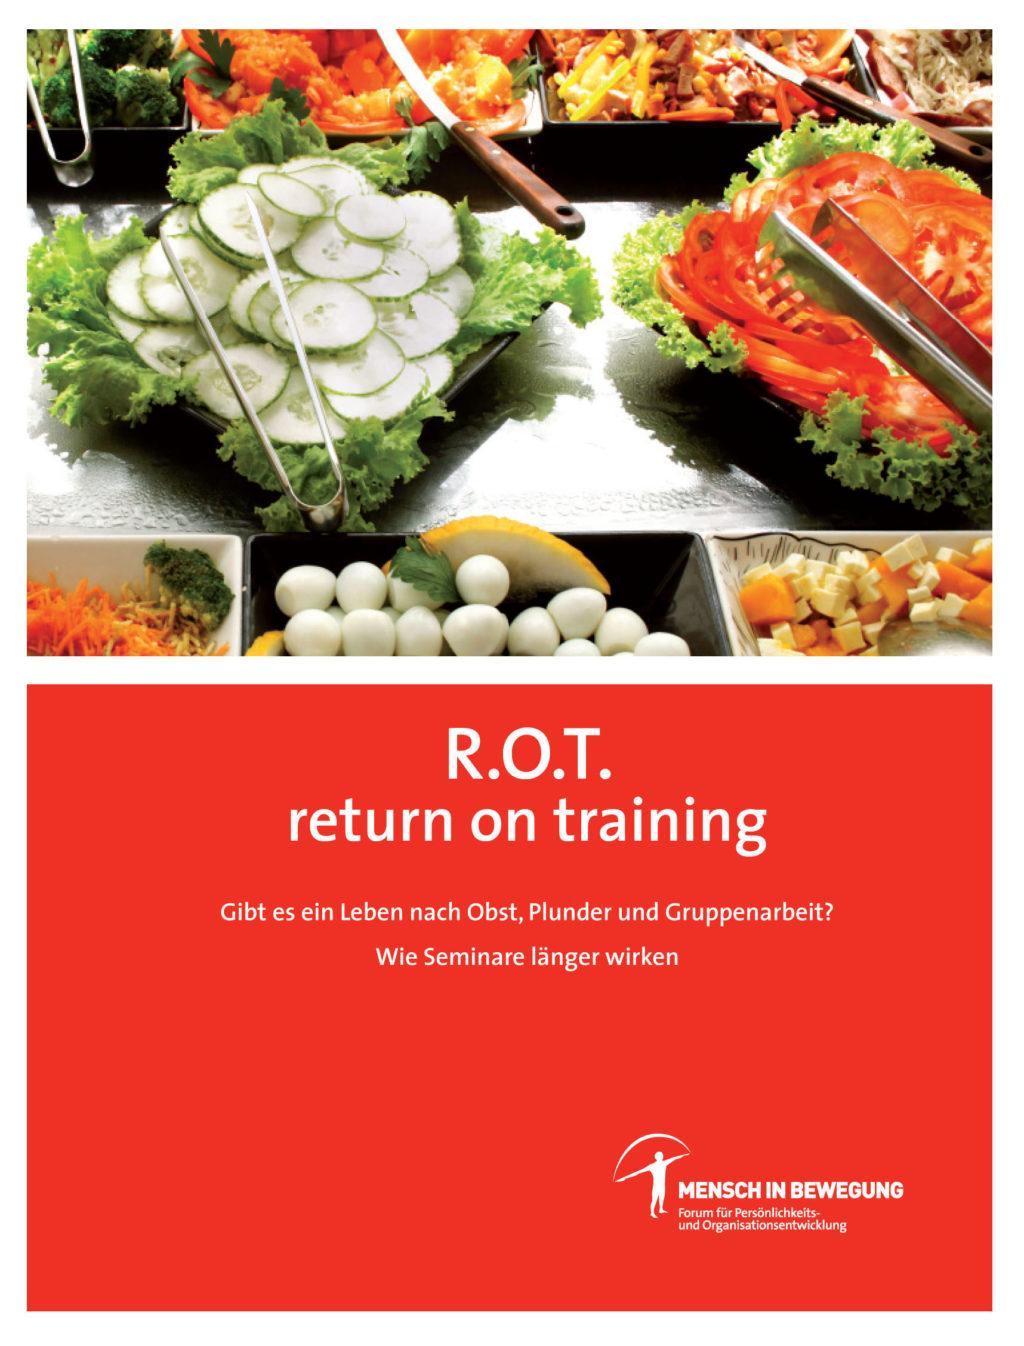 Buchcover R.O.T. Return On Training - von Mag Norbert Withalm & Mensch in Bewegung